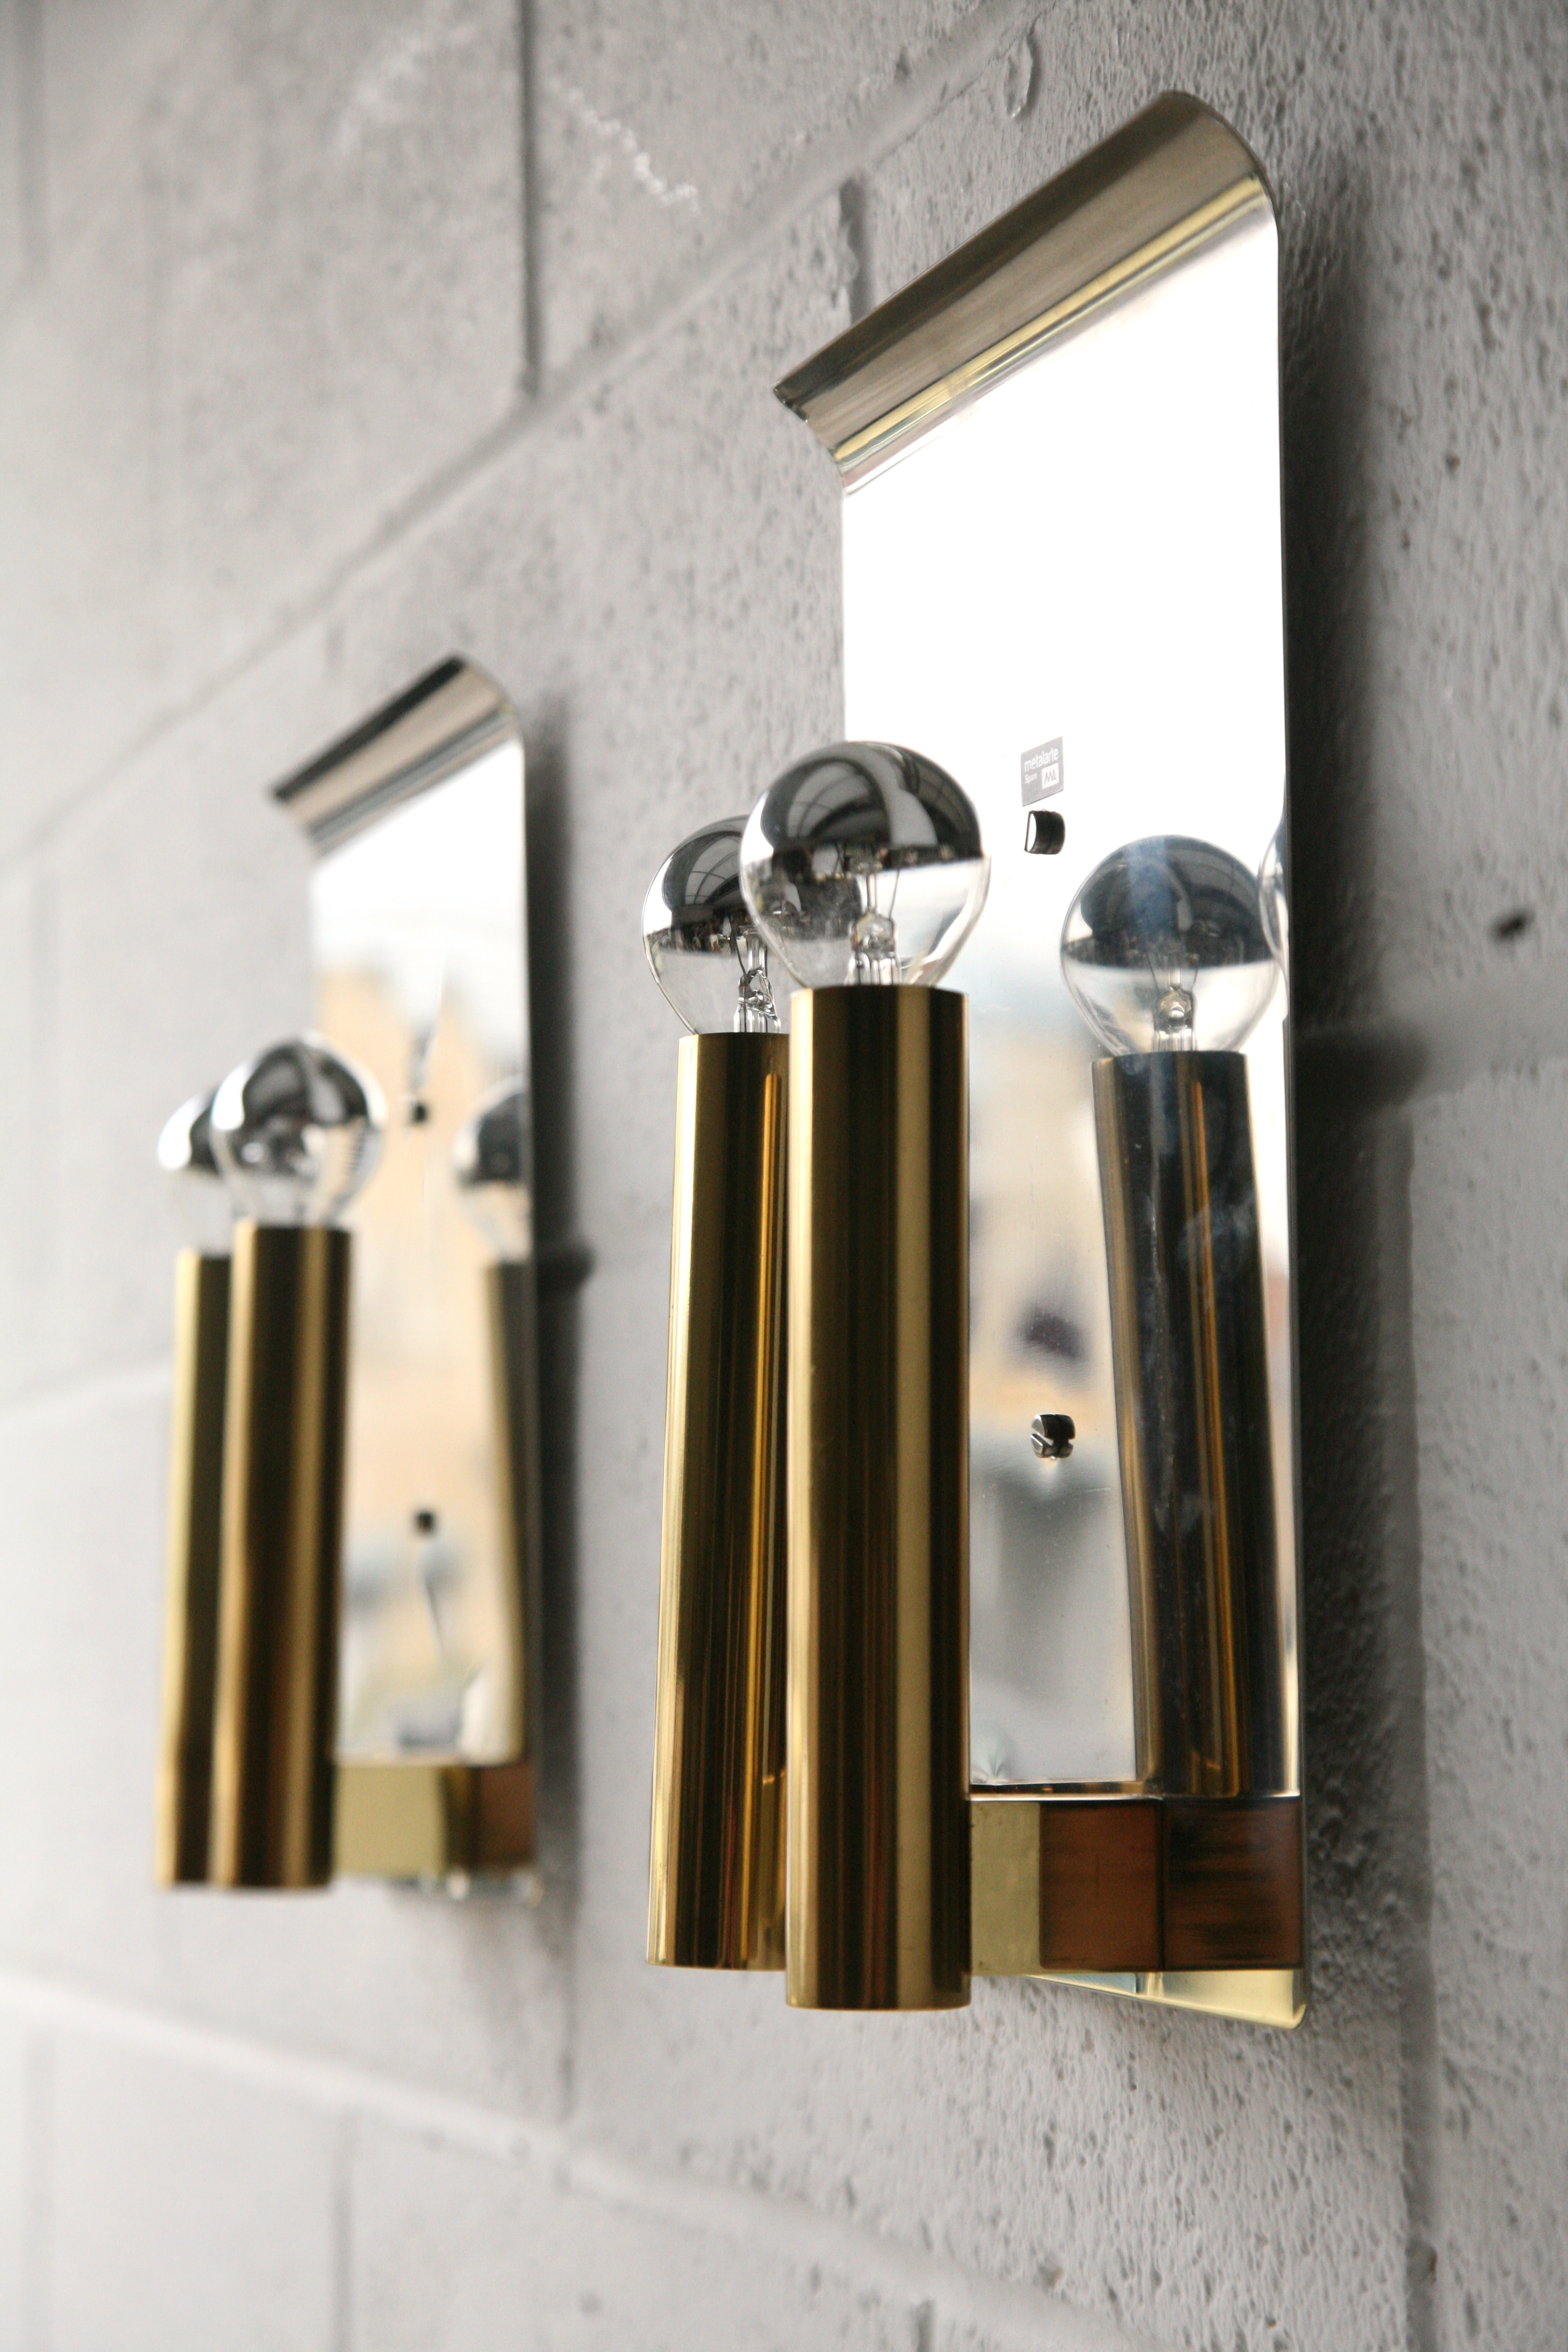 Chrome & Brass Wall Lights by Metalarte Spain 1